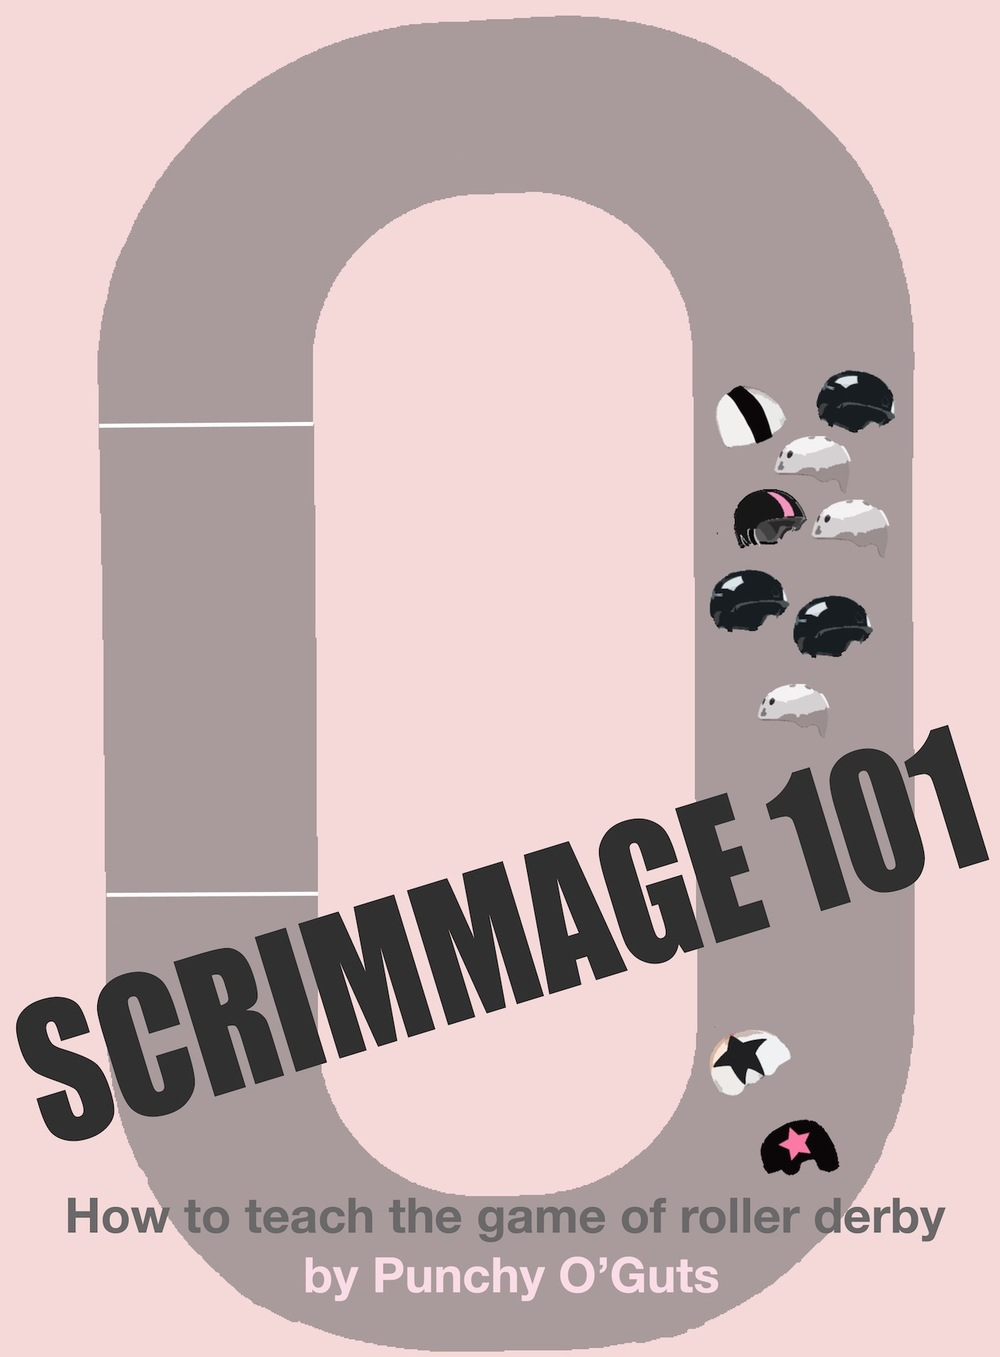 scrimmage 101 cover.jpg